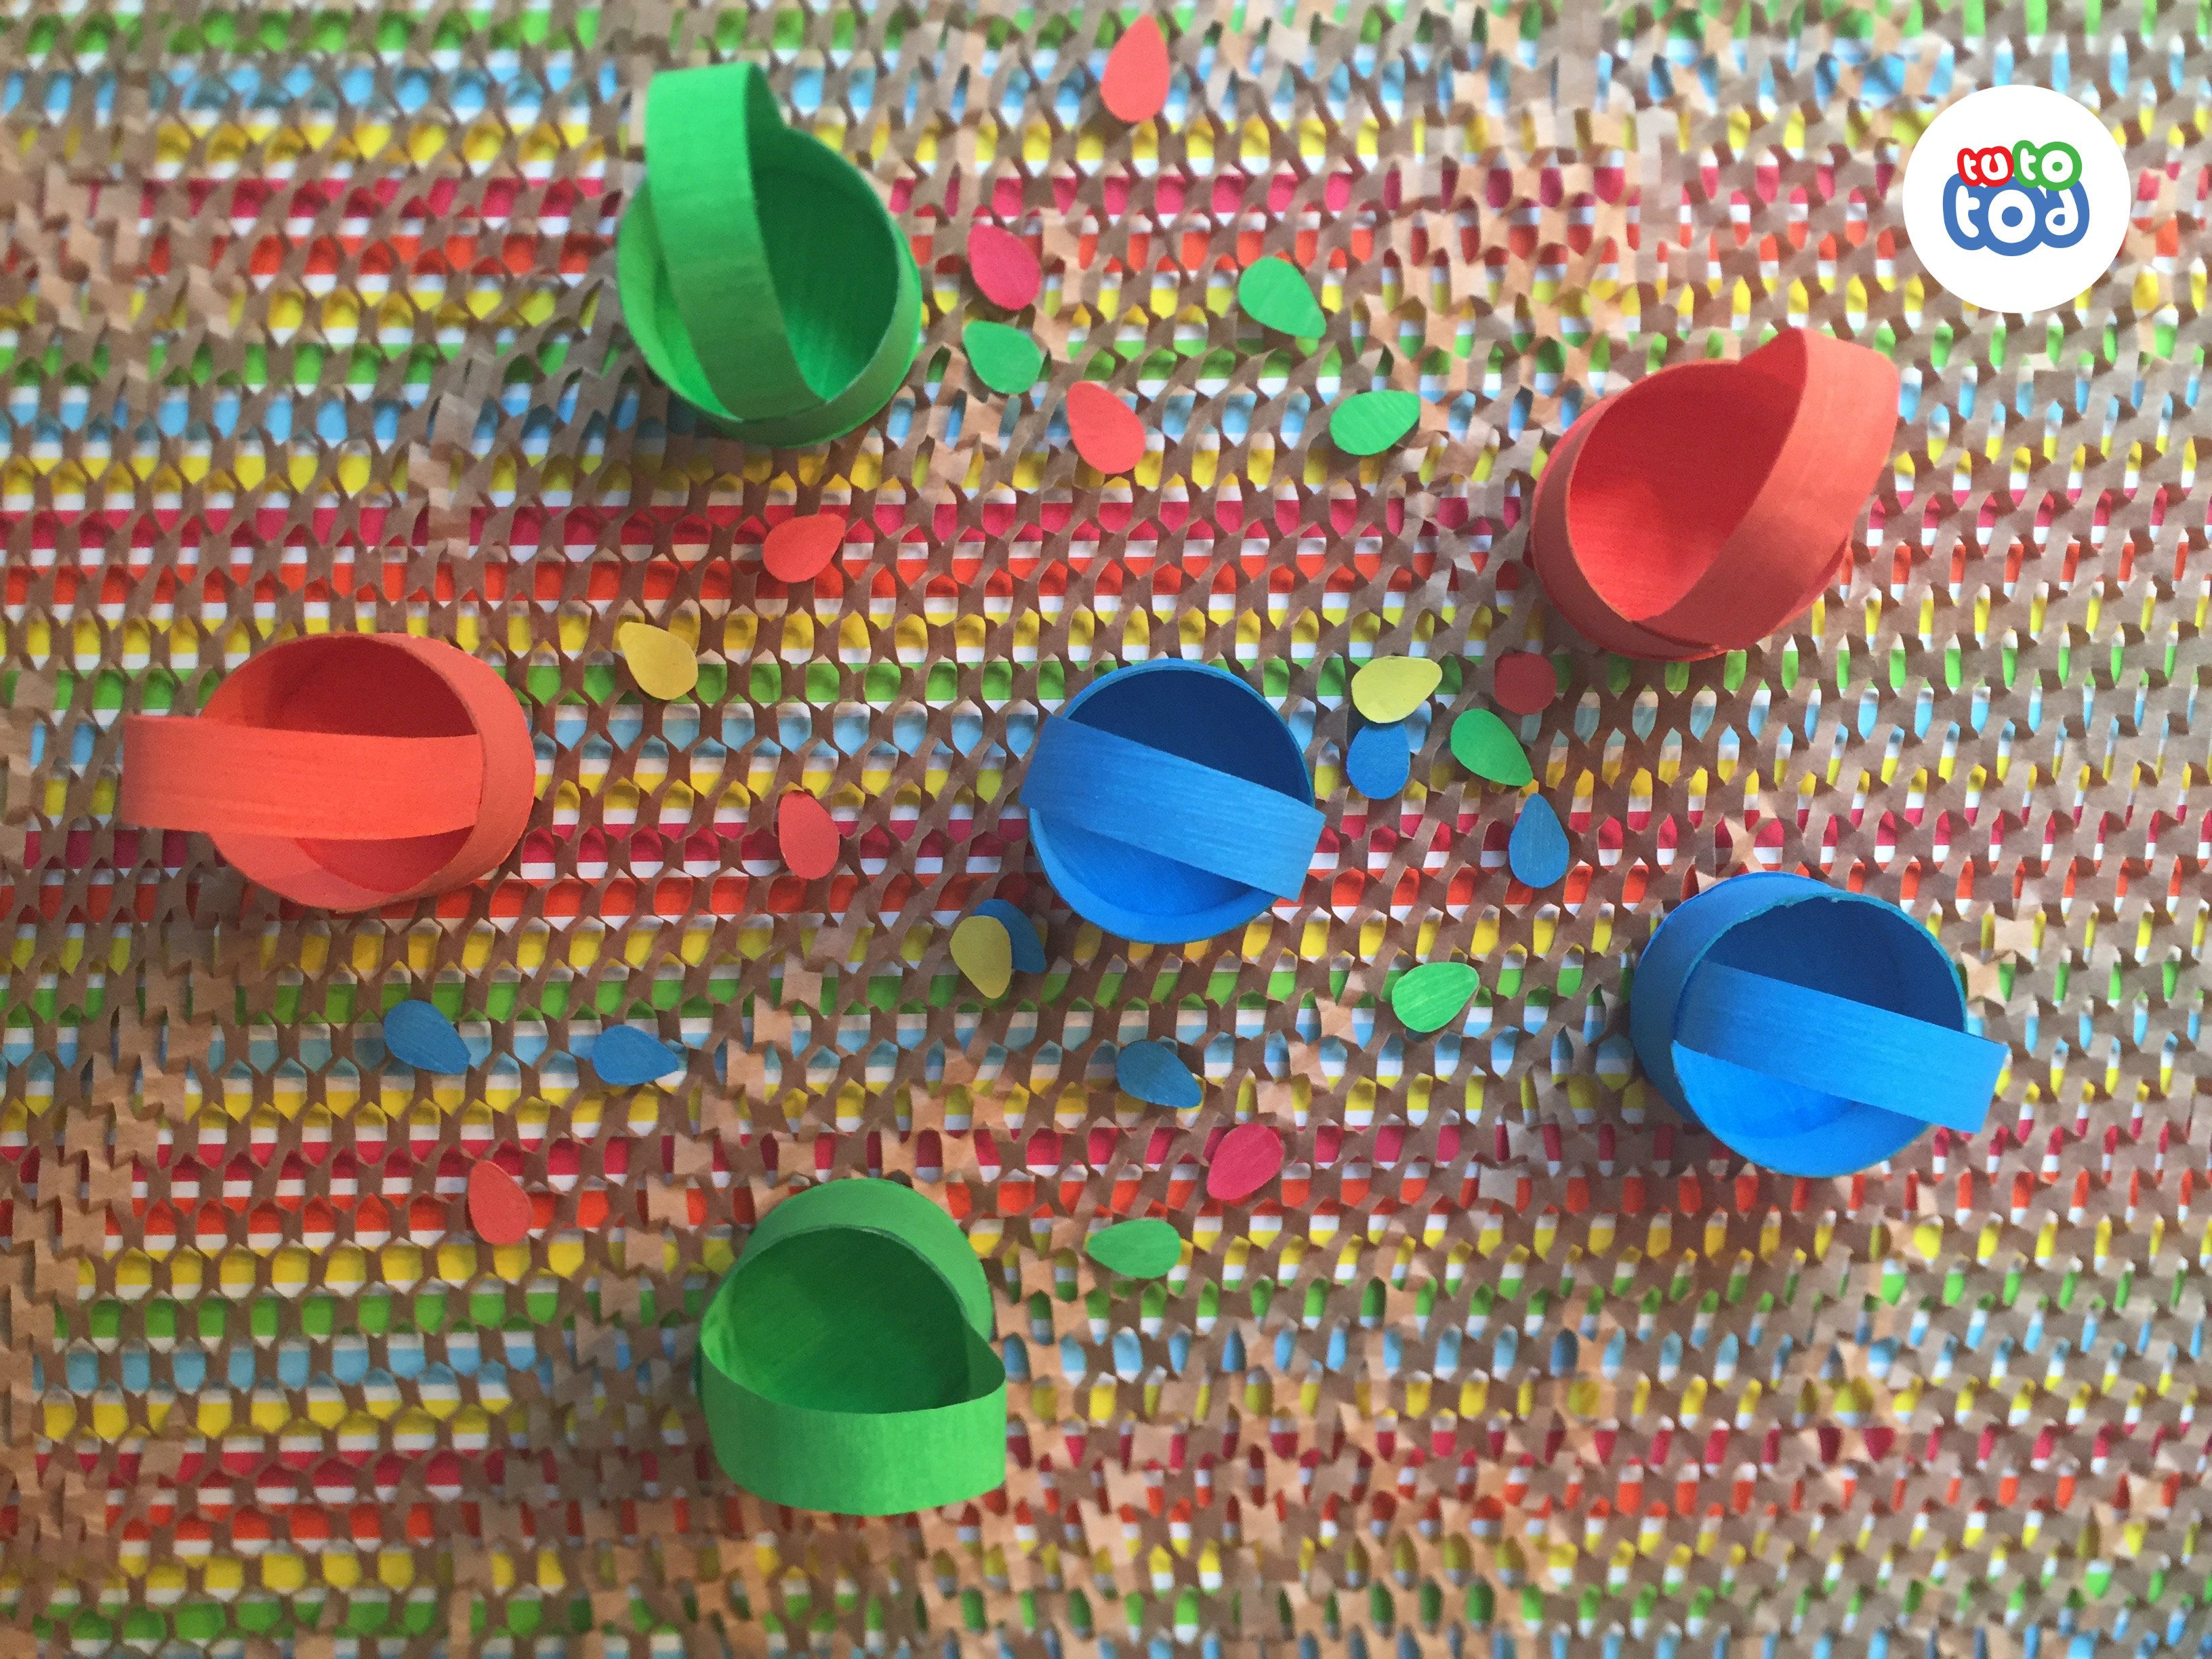 The Colorful Baskets With Colorful Eggs Will Help Your